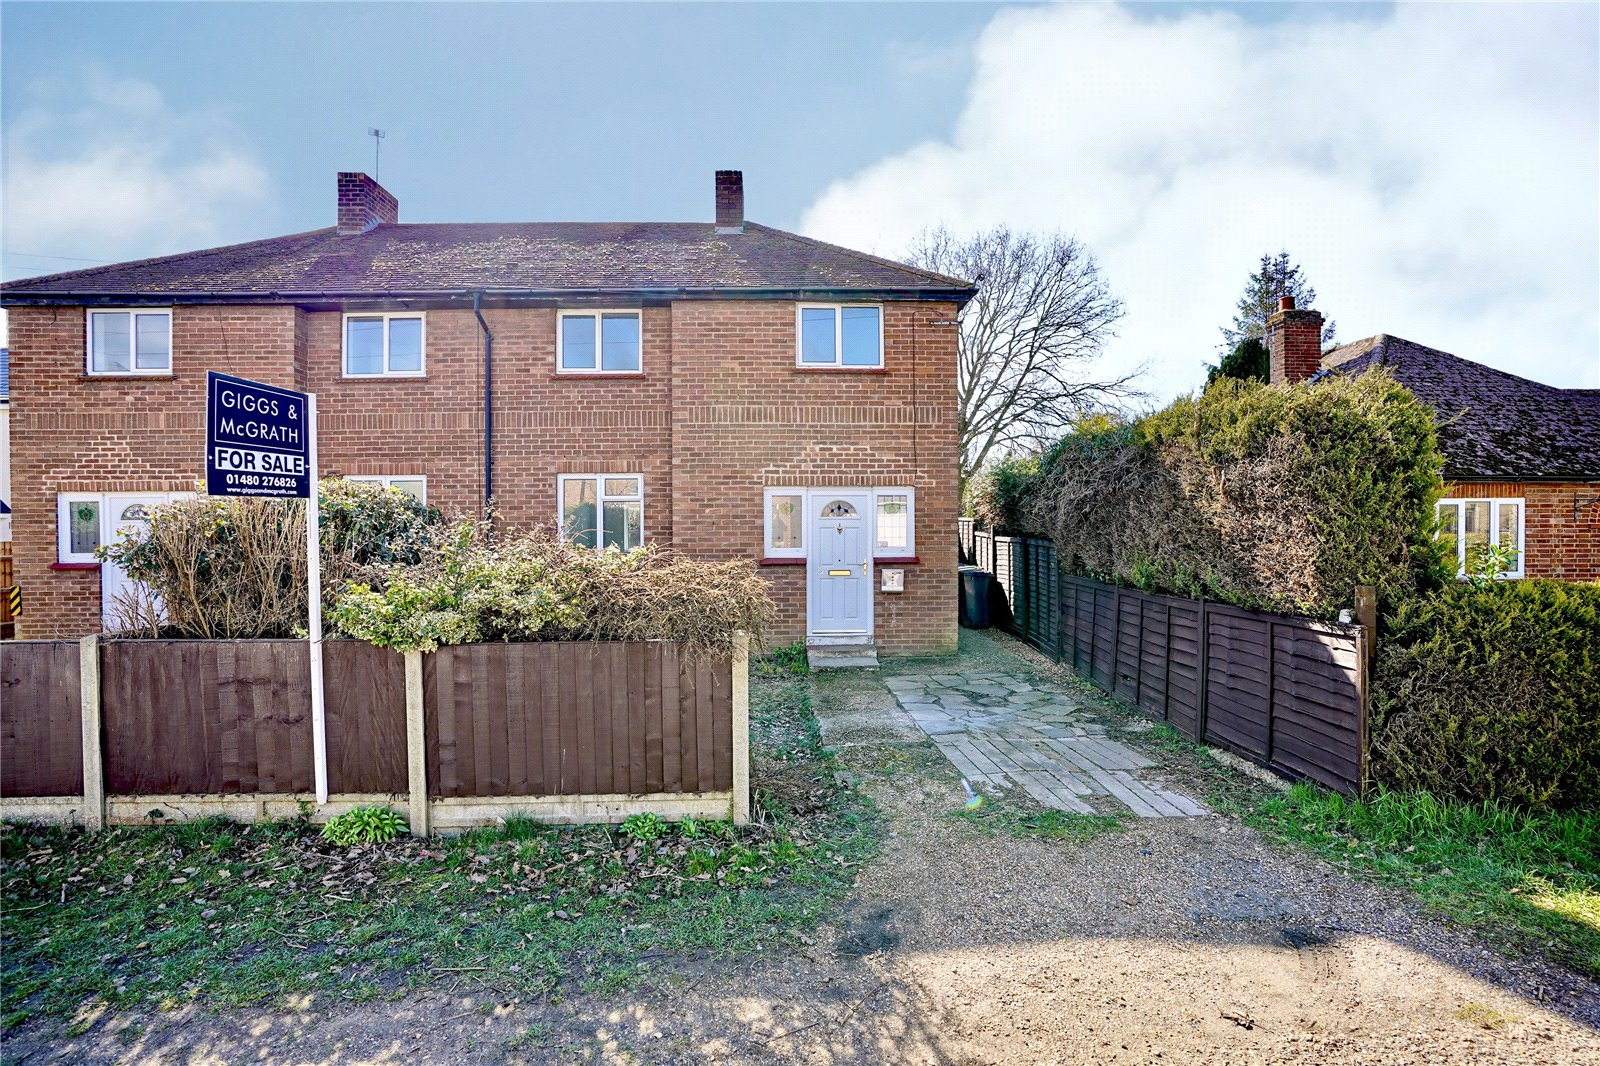 3 bed house for sale in Brampton, PE28 4SD  - Property Image 1